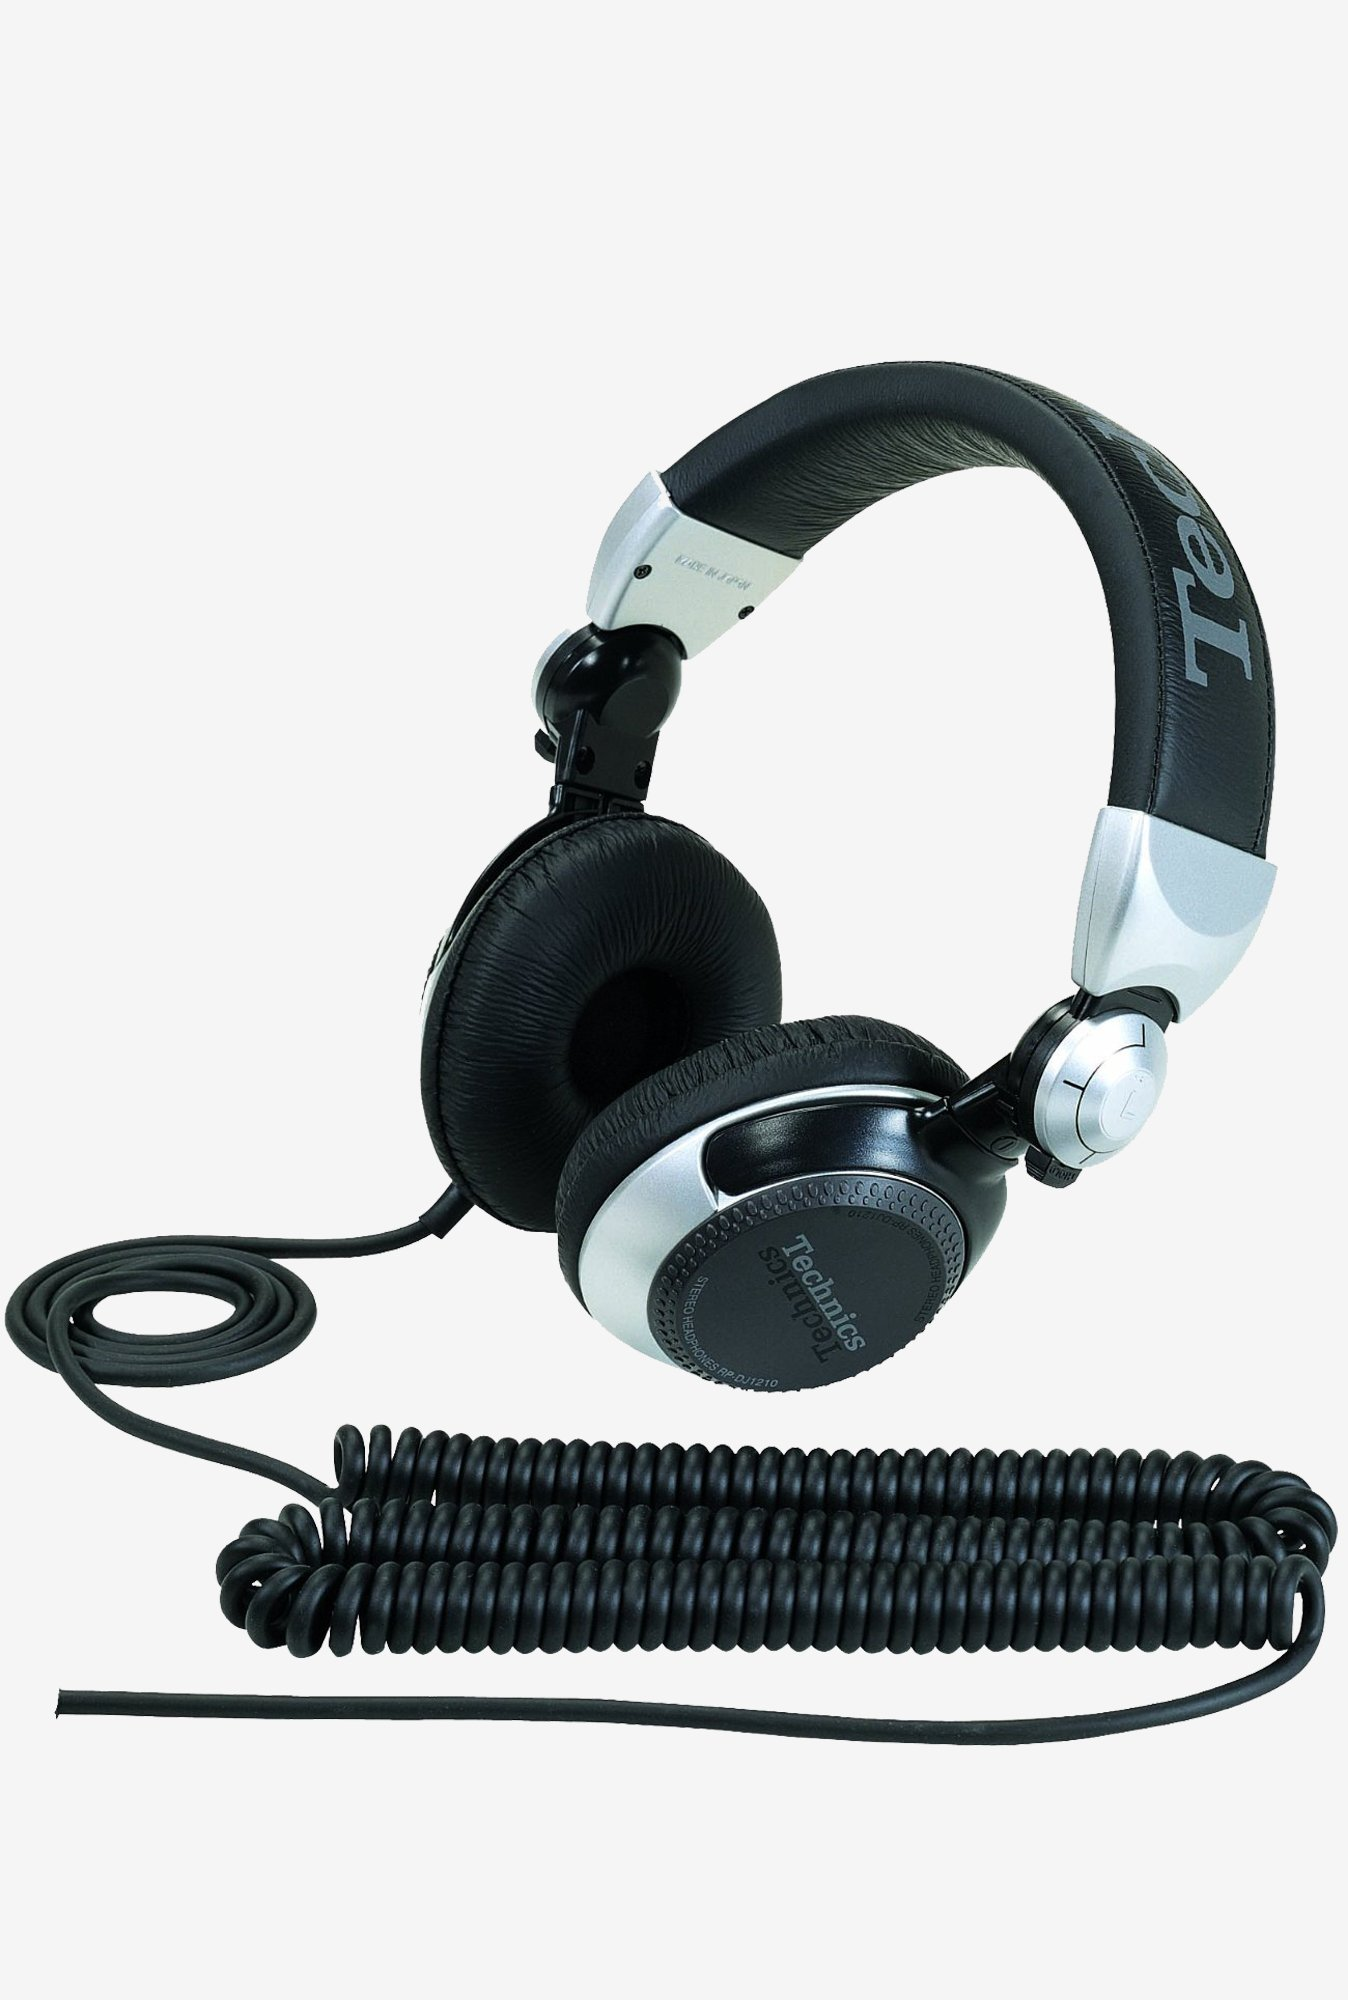 Labtec Generic C-110 On The Ear Deluxe Stereo Headset (Grey)